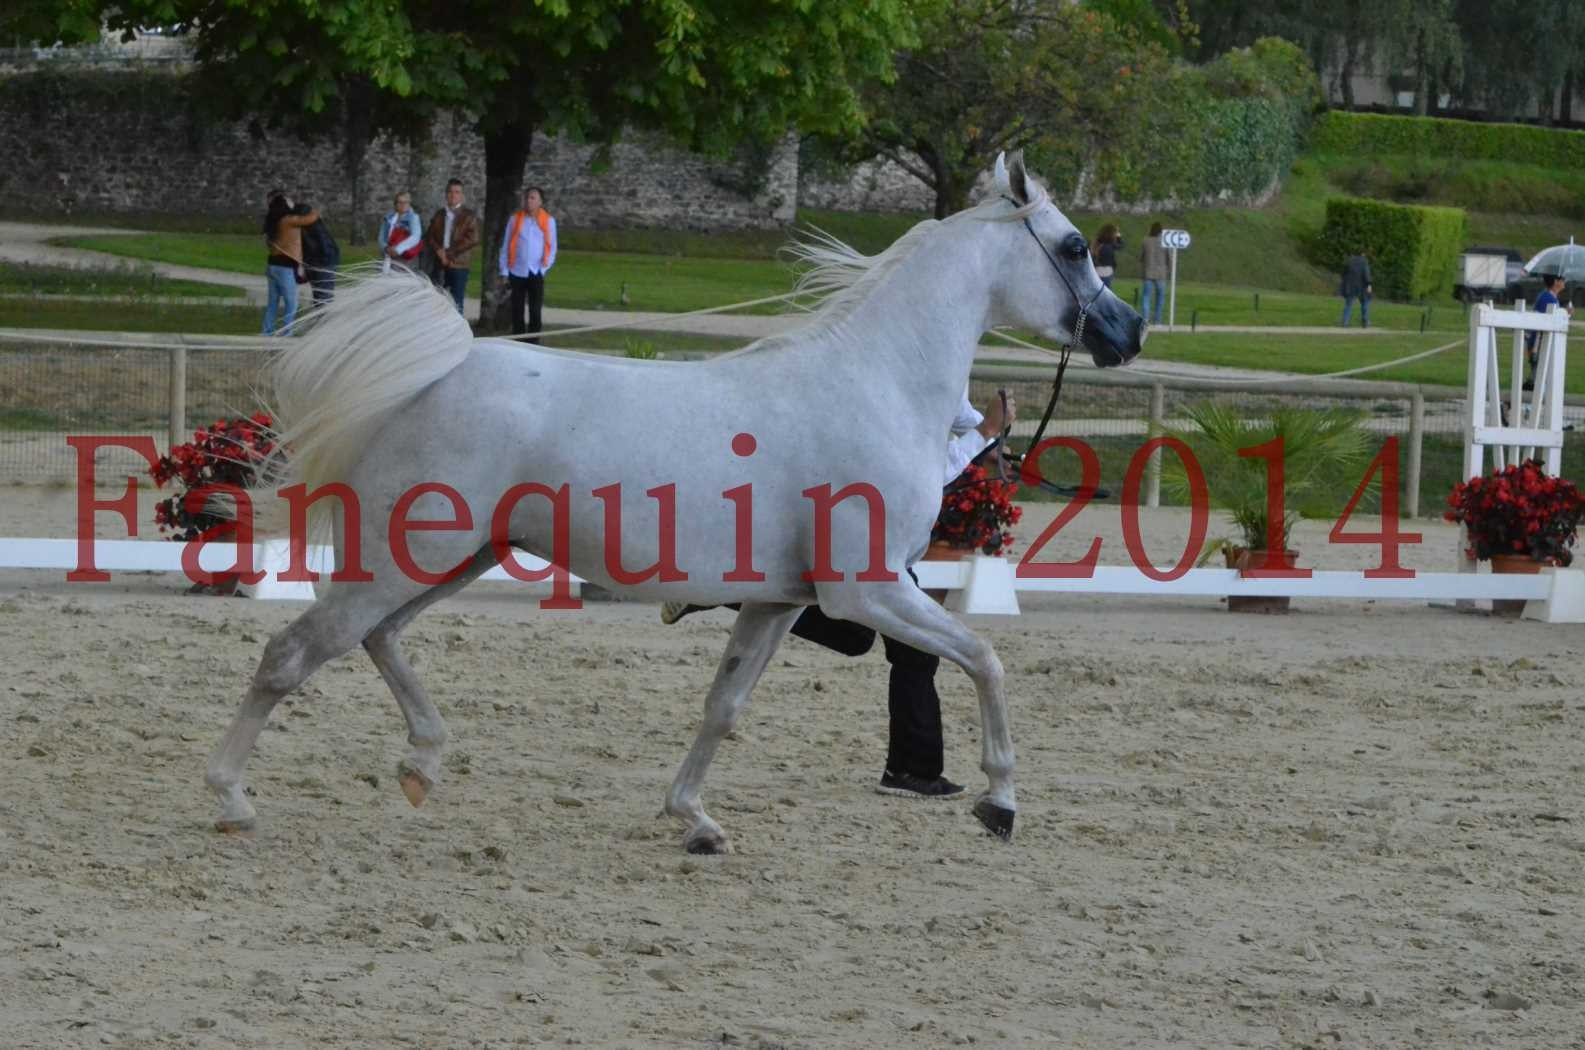 CHAMPIONNAT DE FRANCE 2014 A POMPADOUR - Sélection - FA STARLIGHT - 07